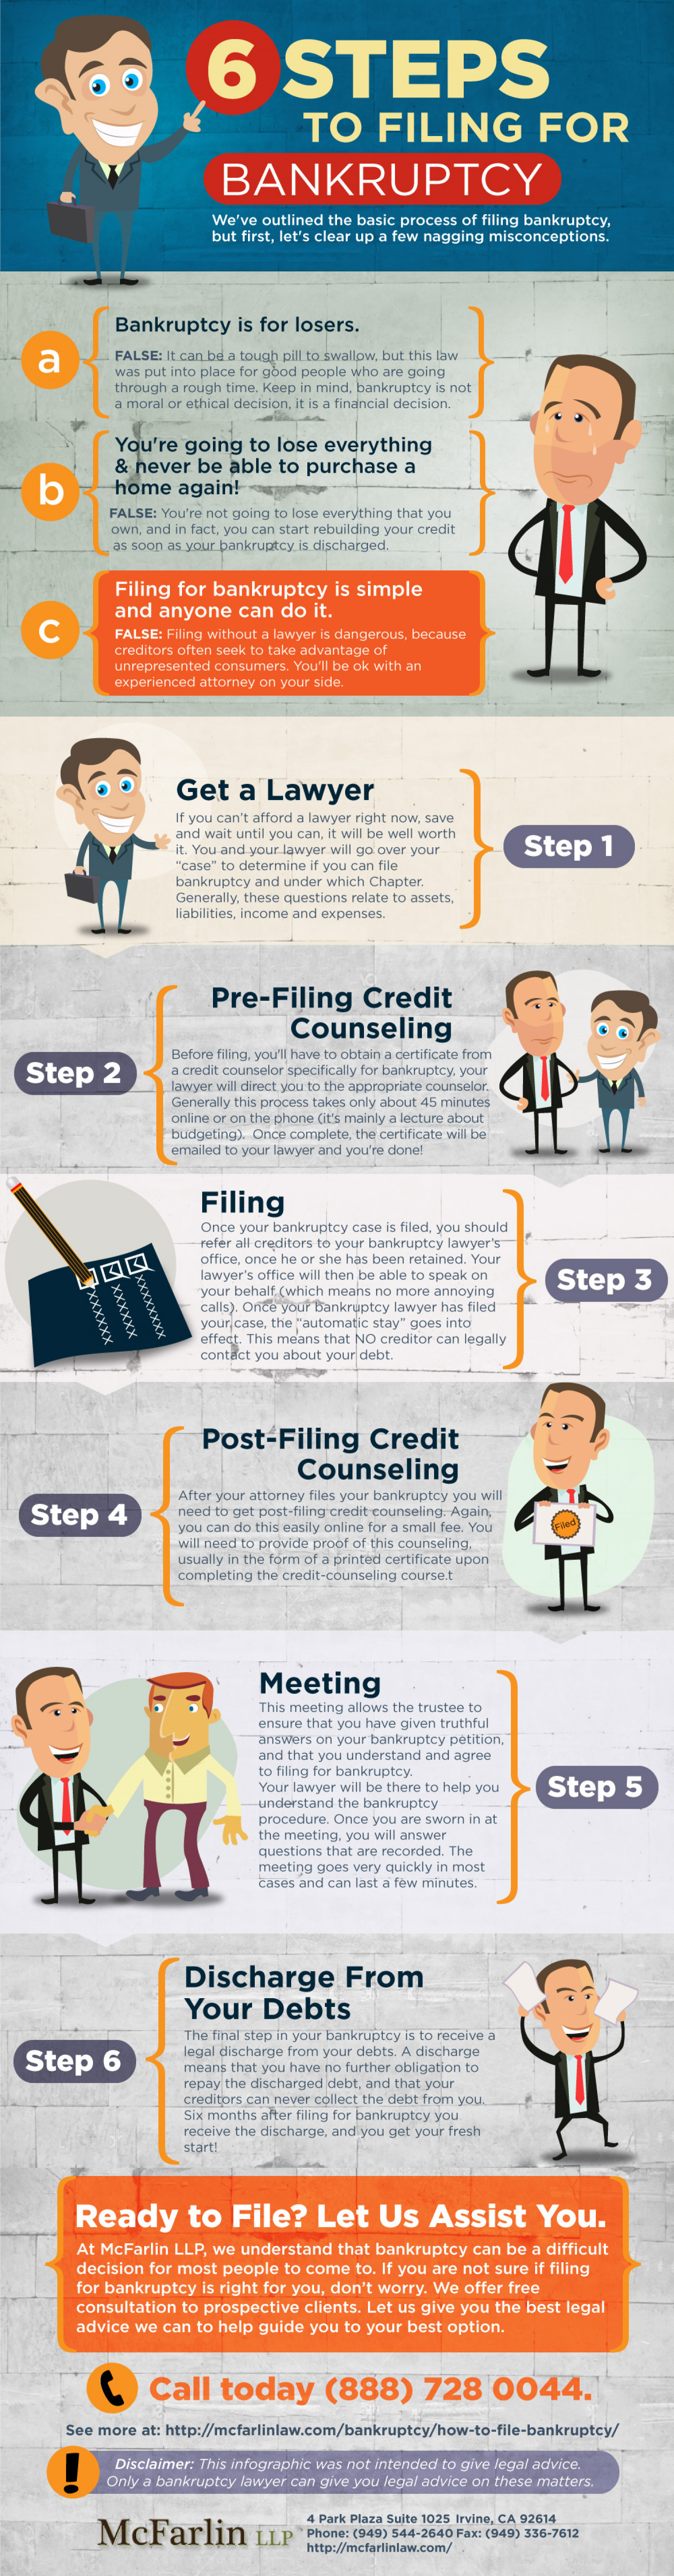 6 Easy Steps To Filing For Bankruptcy Infographic